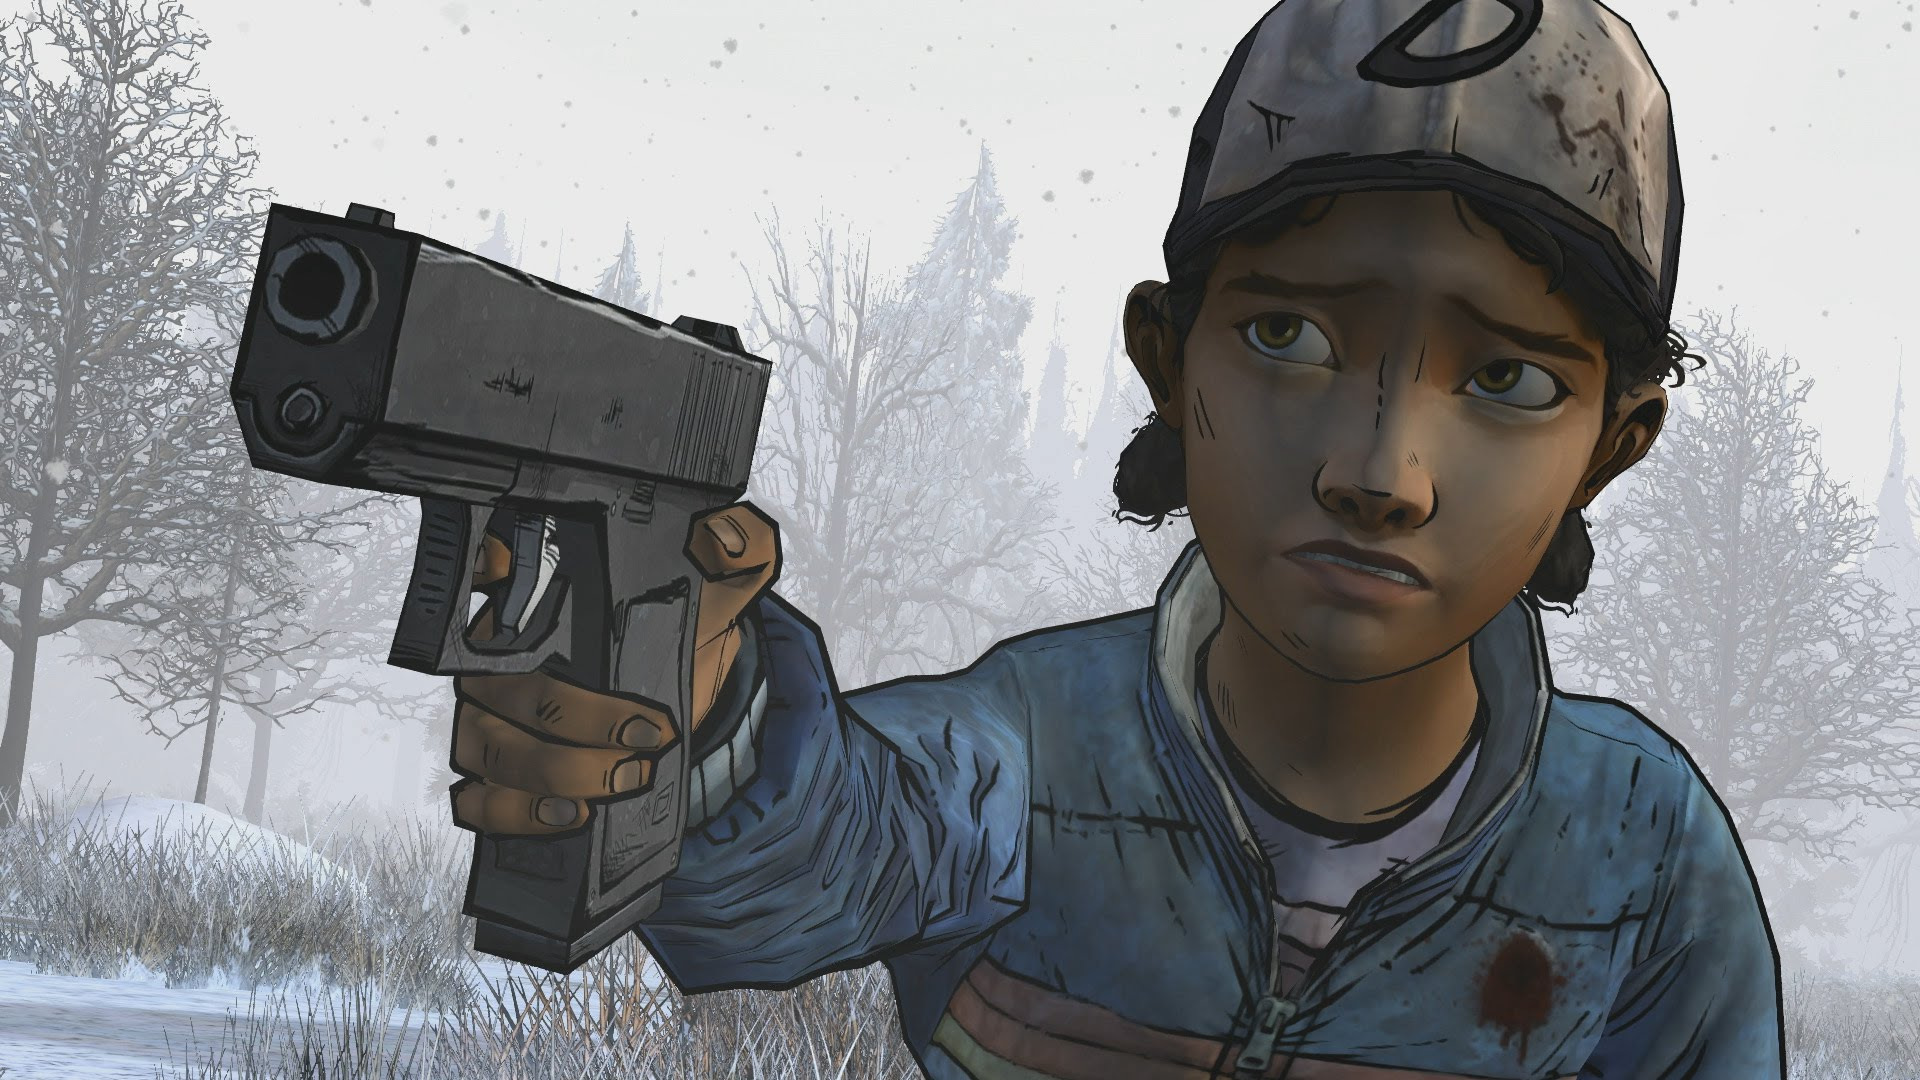 The walking dead season 2 review stuck in the middle with you